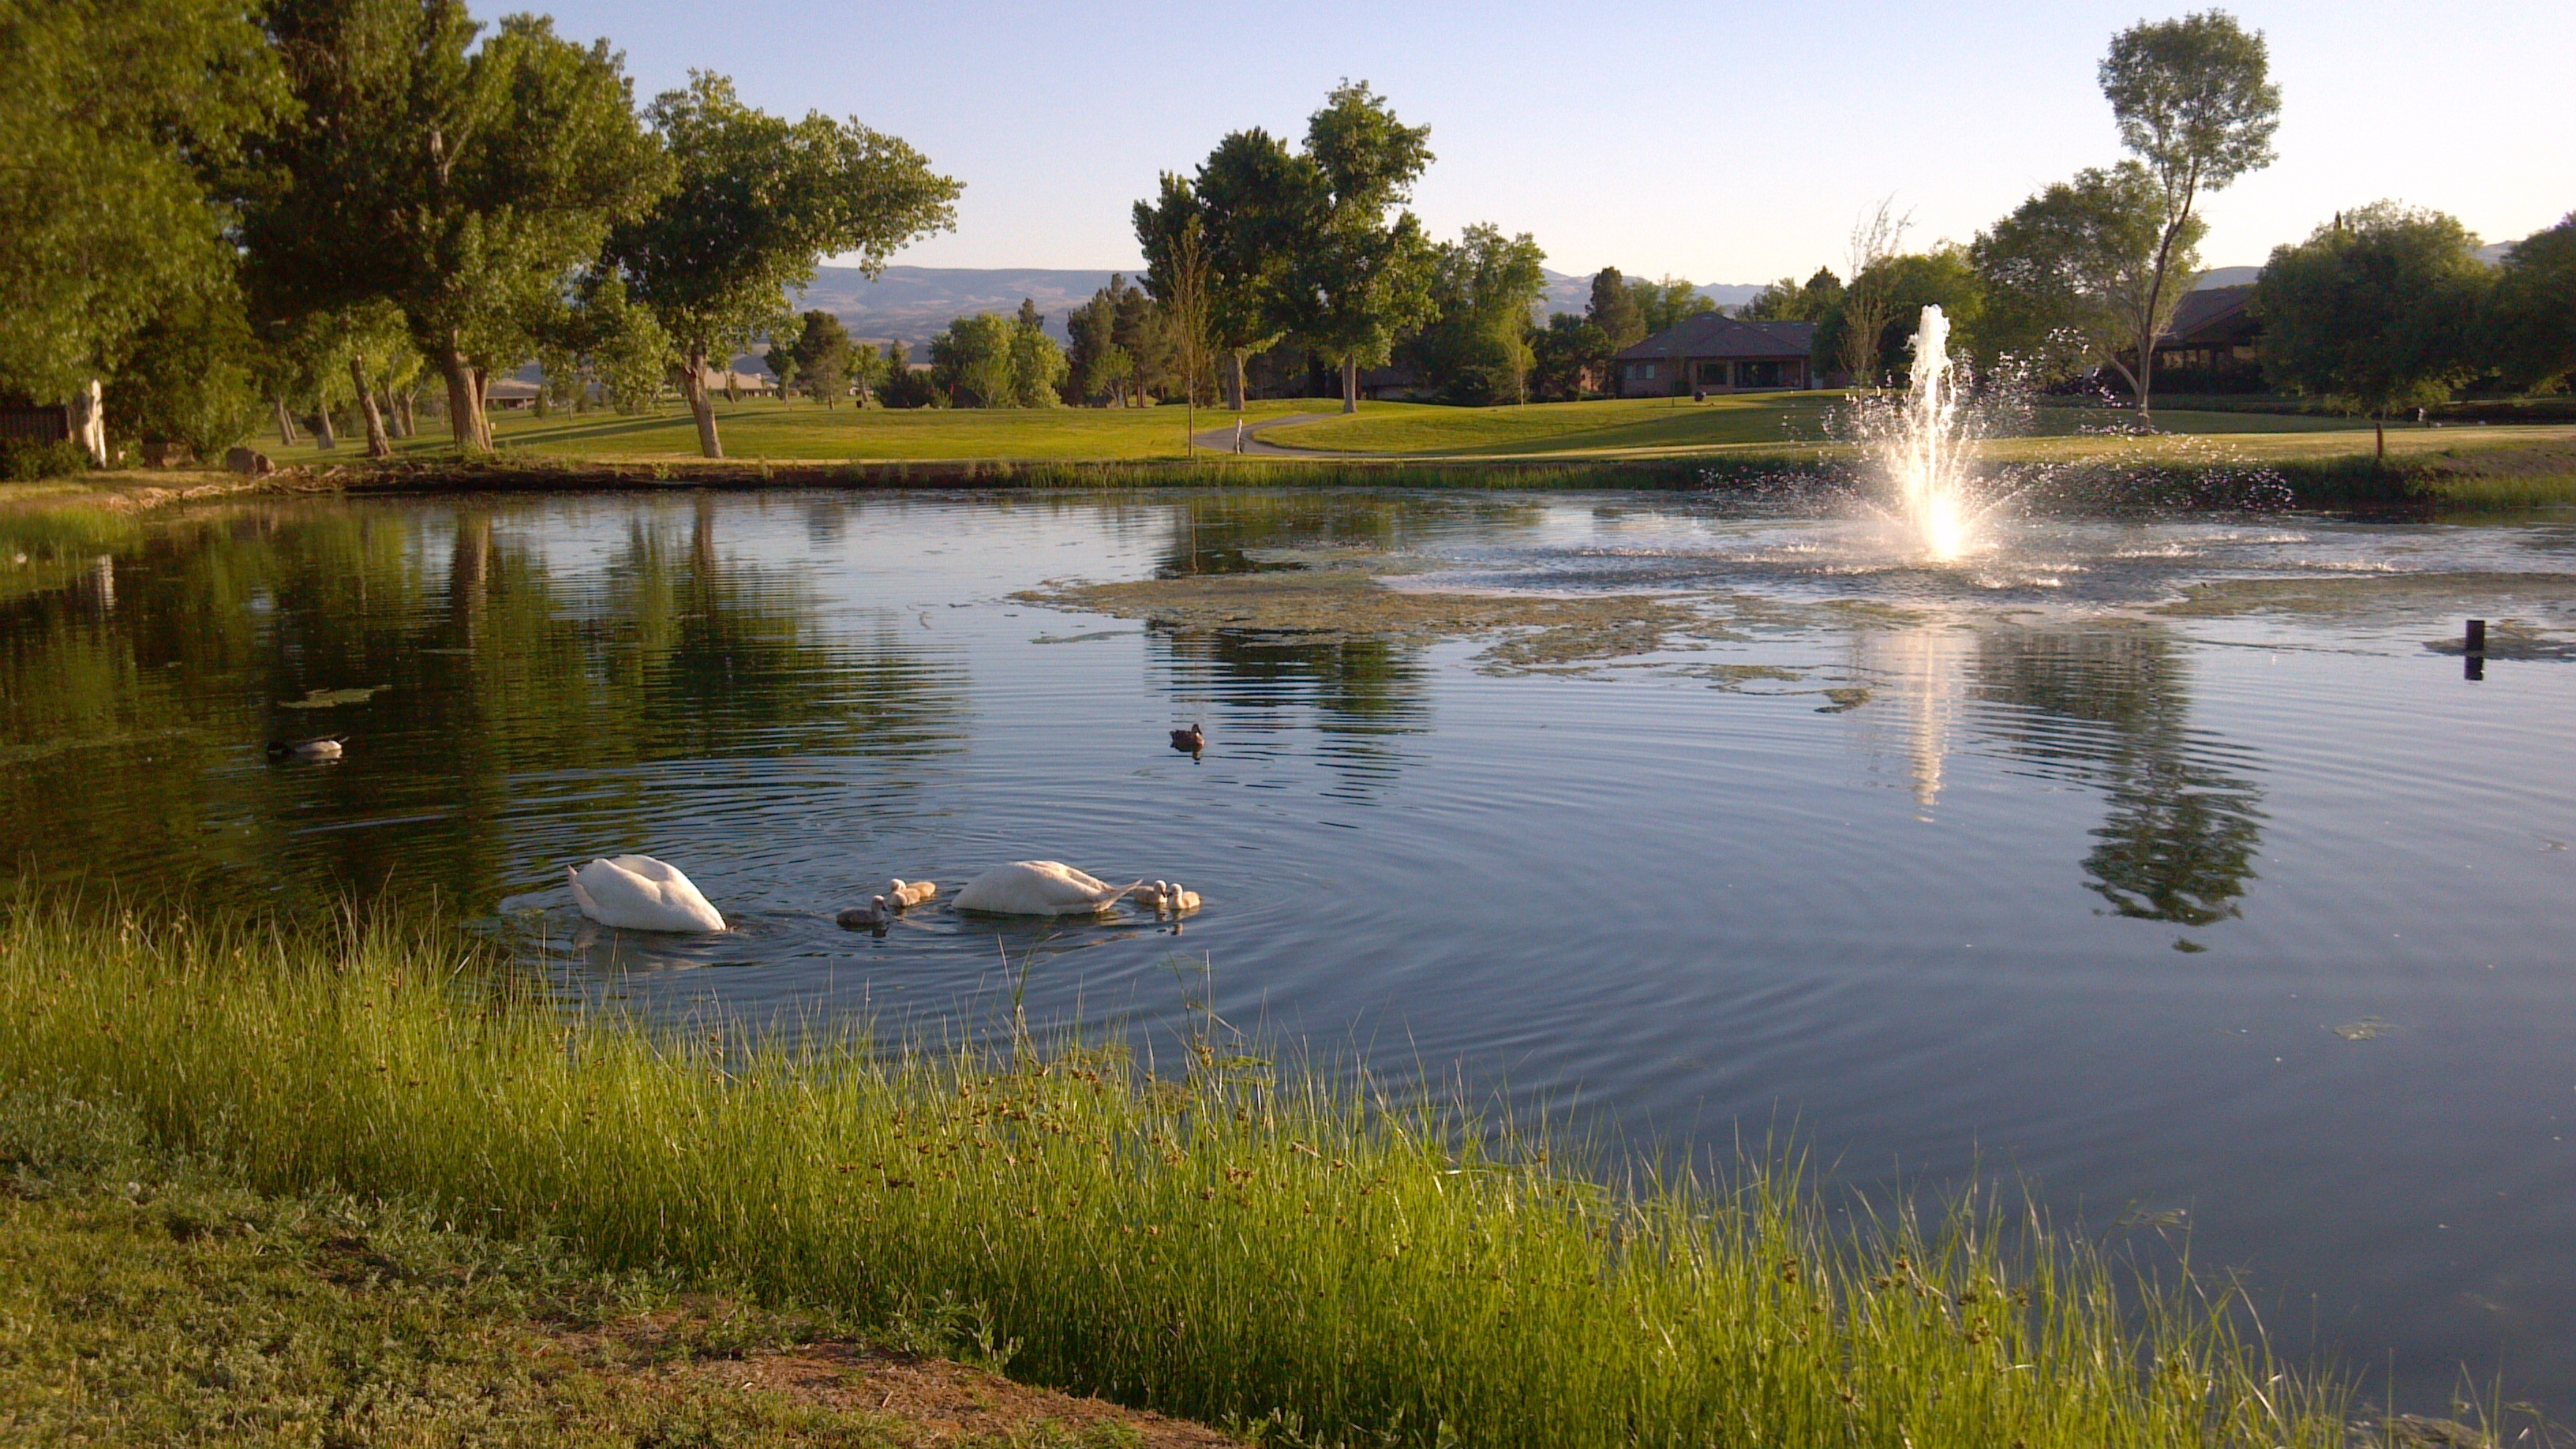 Bloomington Country Club, St. George, Utah, May 2012 | Photo by Joyce Kuzmanic, St. George News